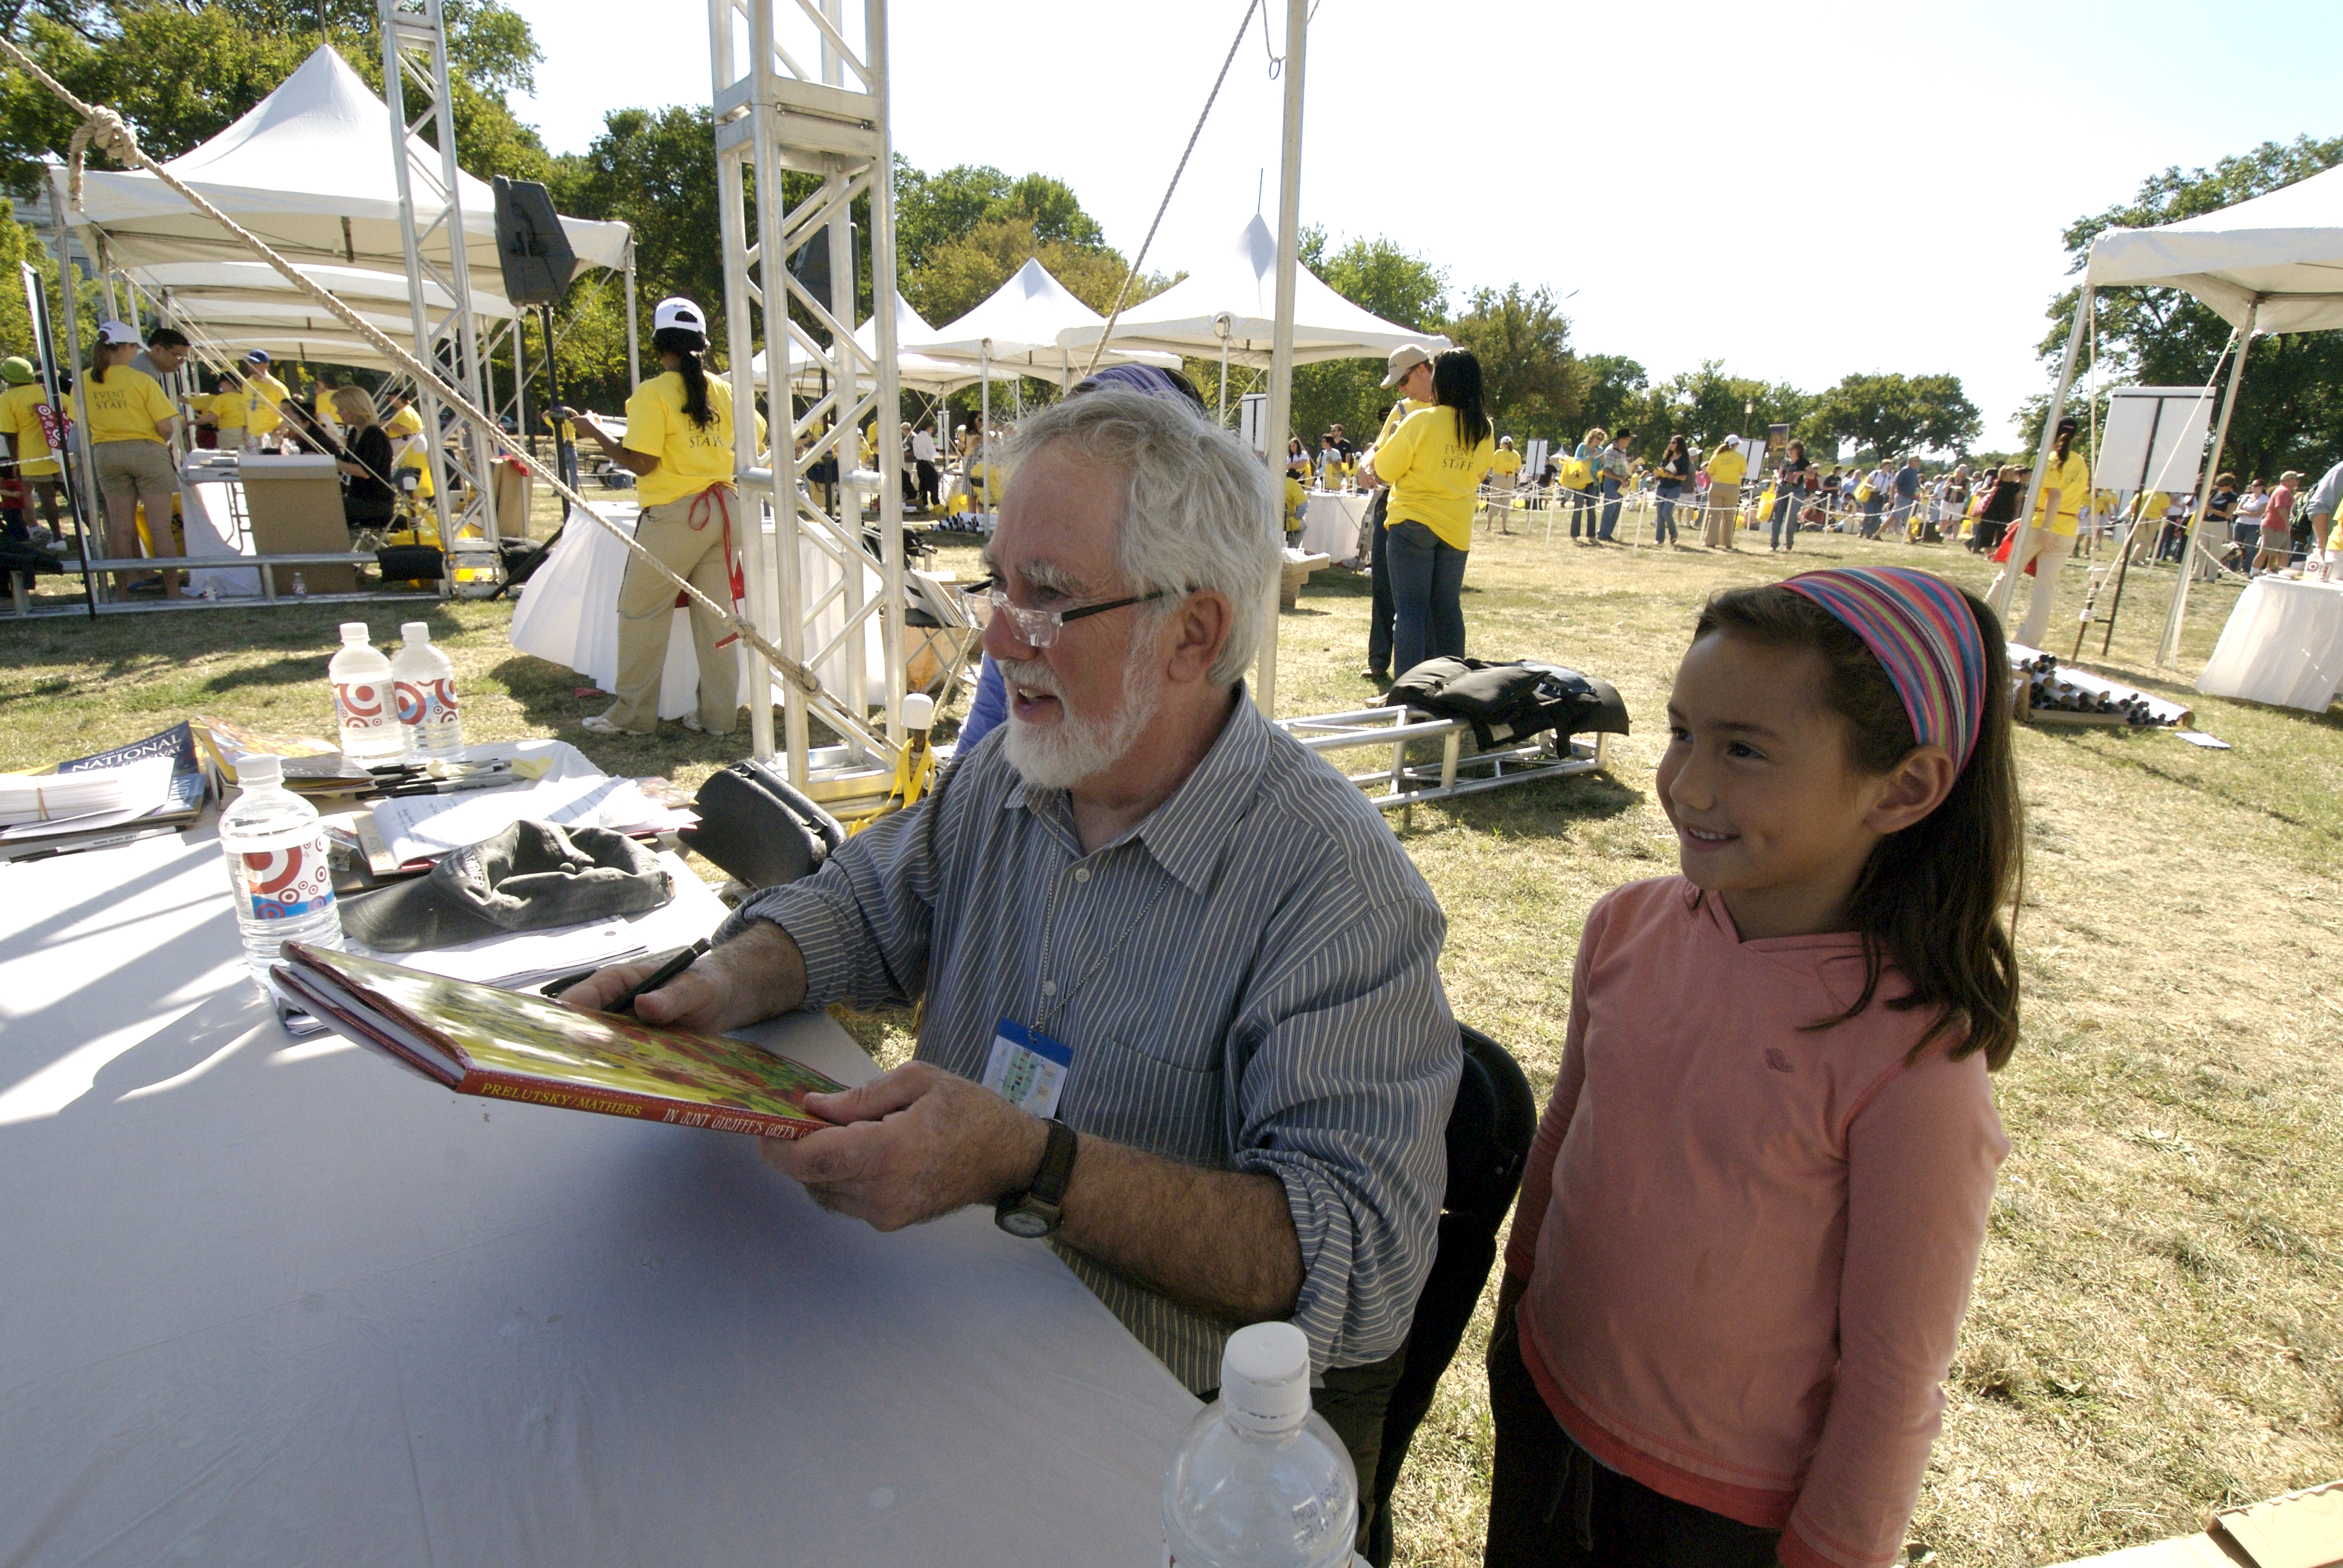 Jack Prelutsky standing next to a little girl while holding a book, smiling, and posing for a picture.